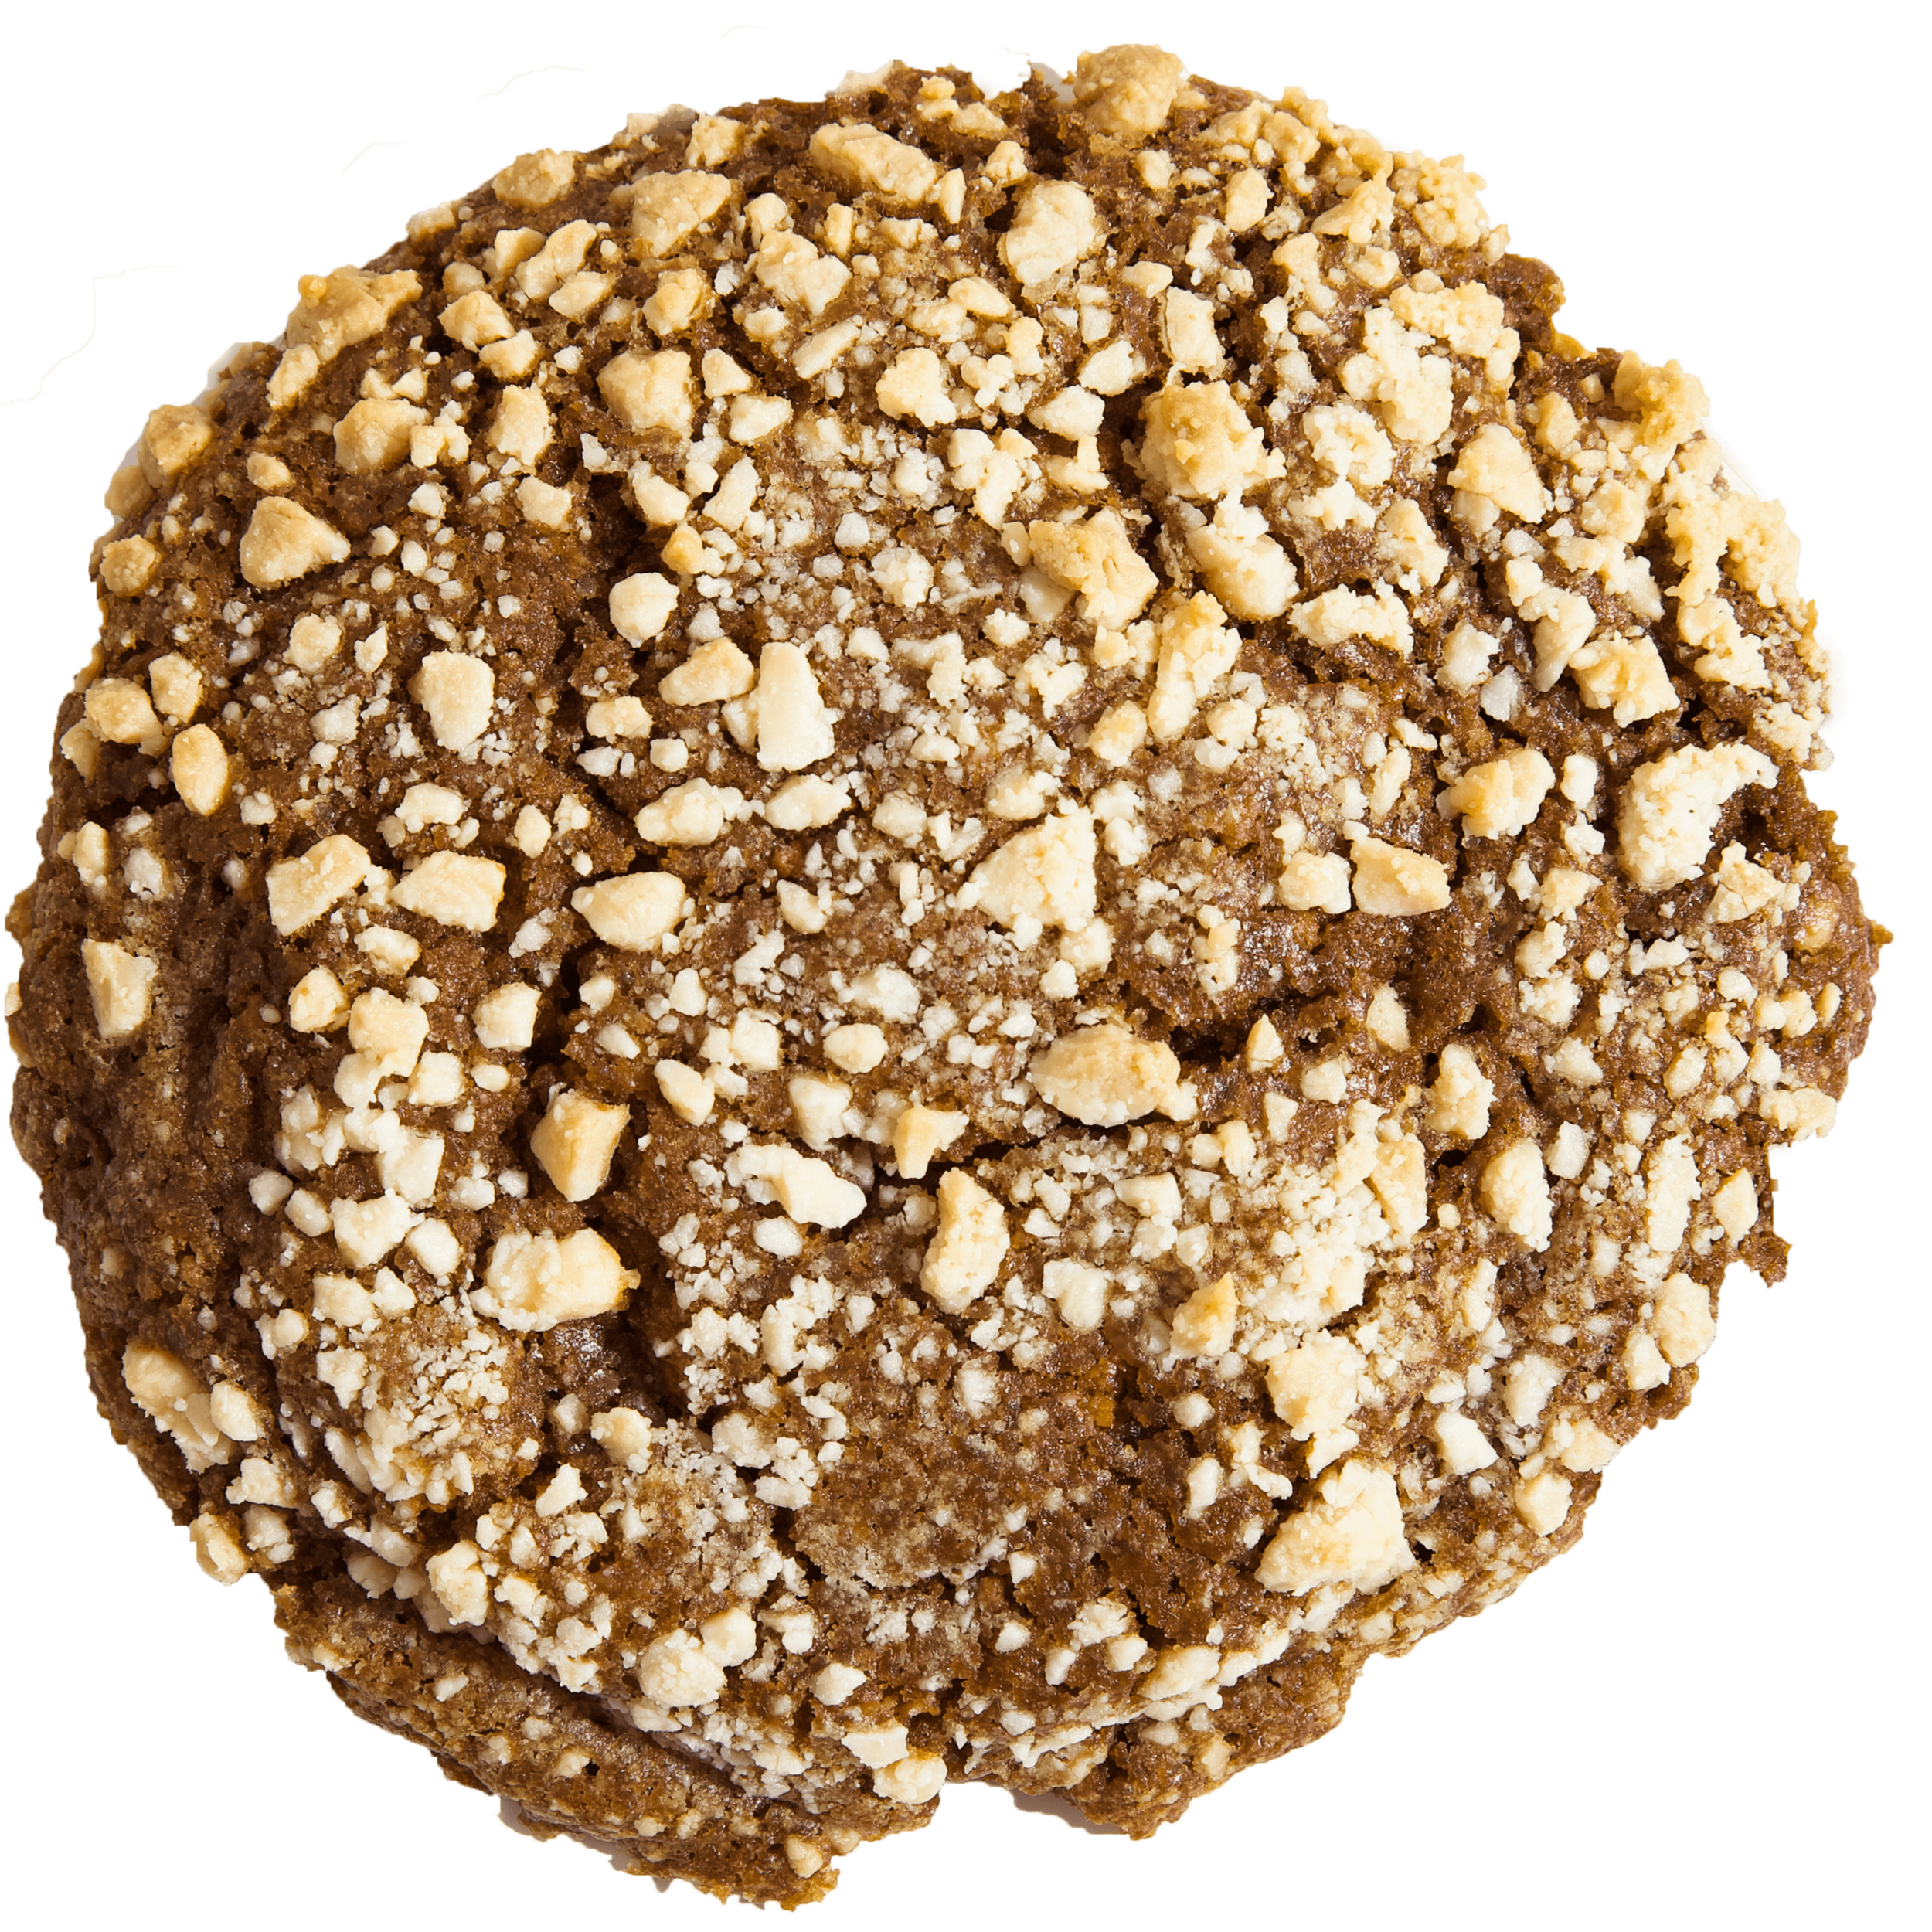 Espresso cookie!? Sure is. Topped with white chocolate chips too. Need I say more?